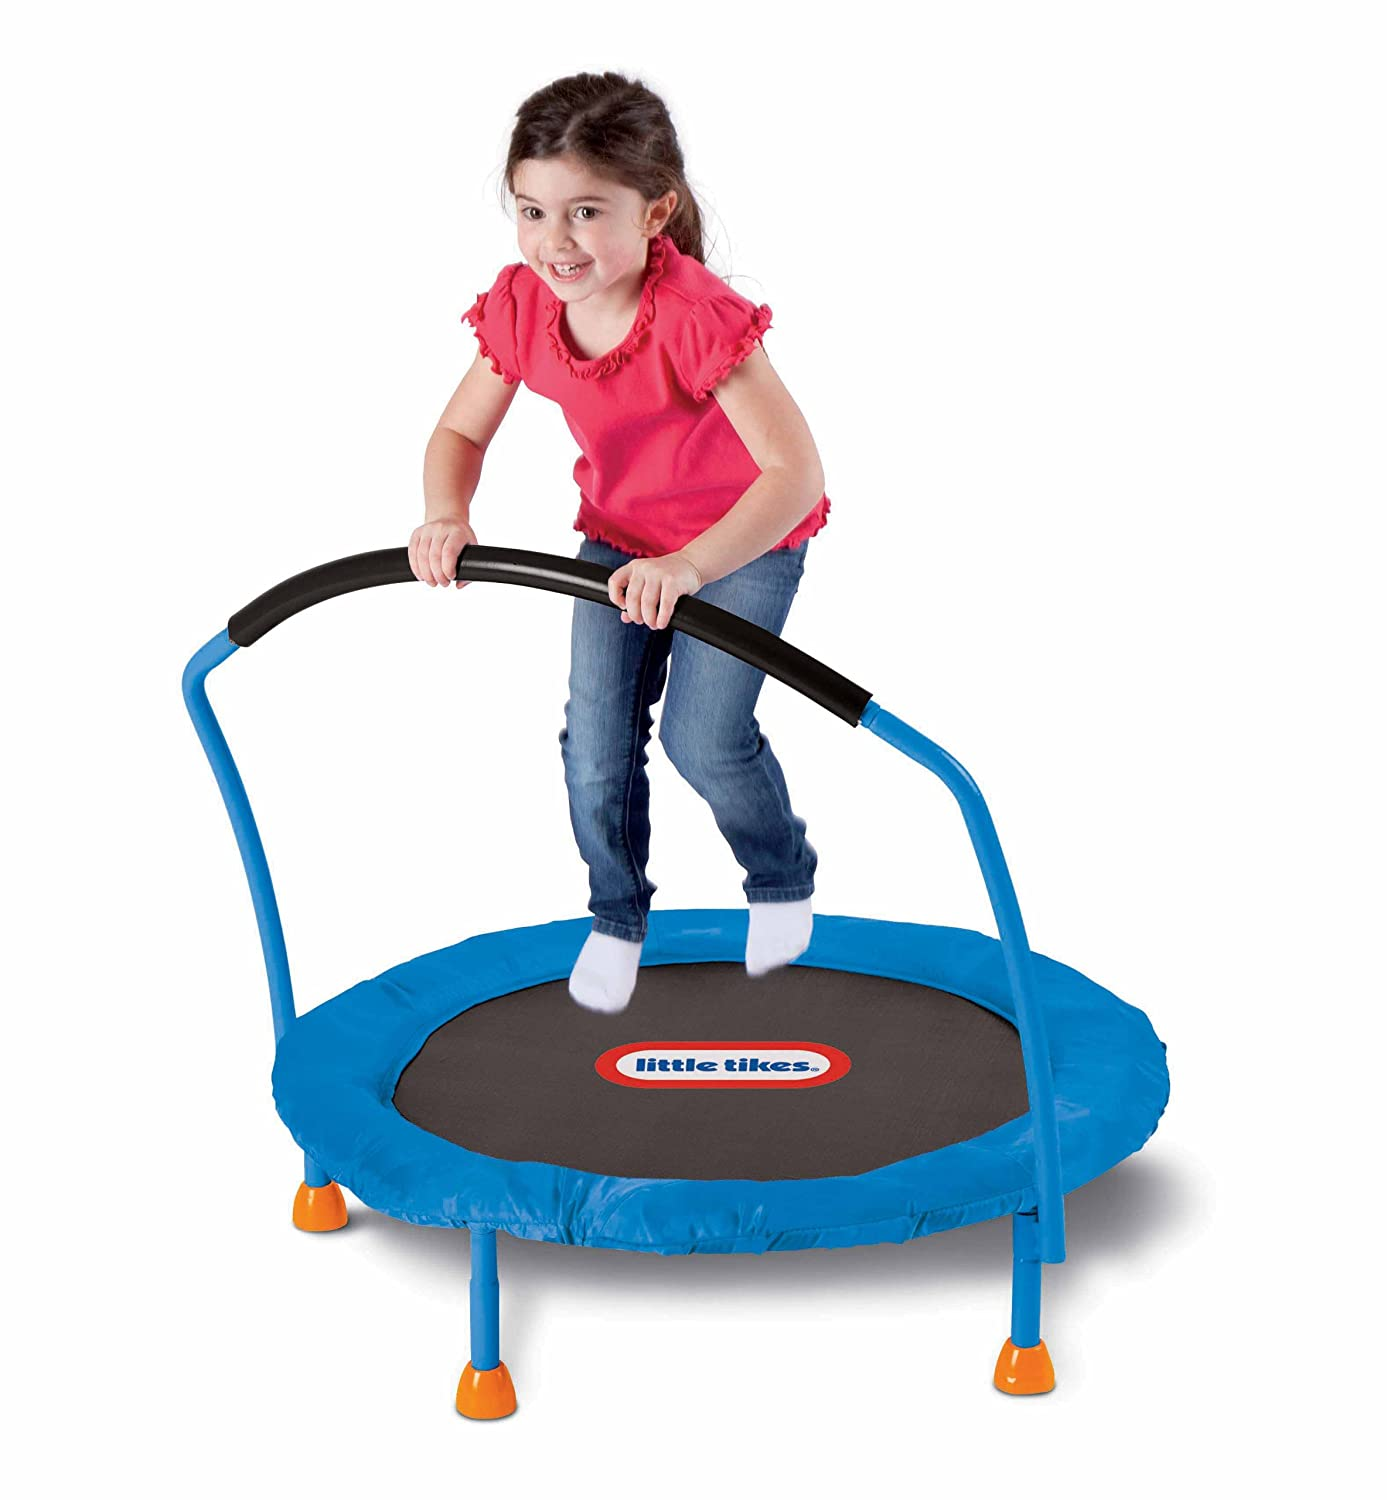 Kids Trampoline with Handle – fel7.com